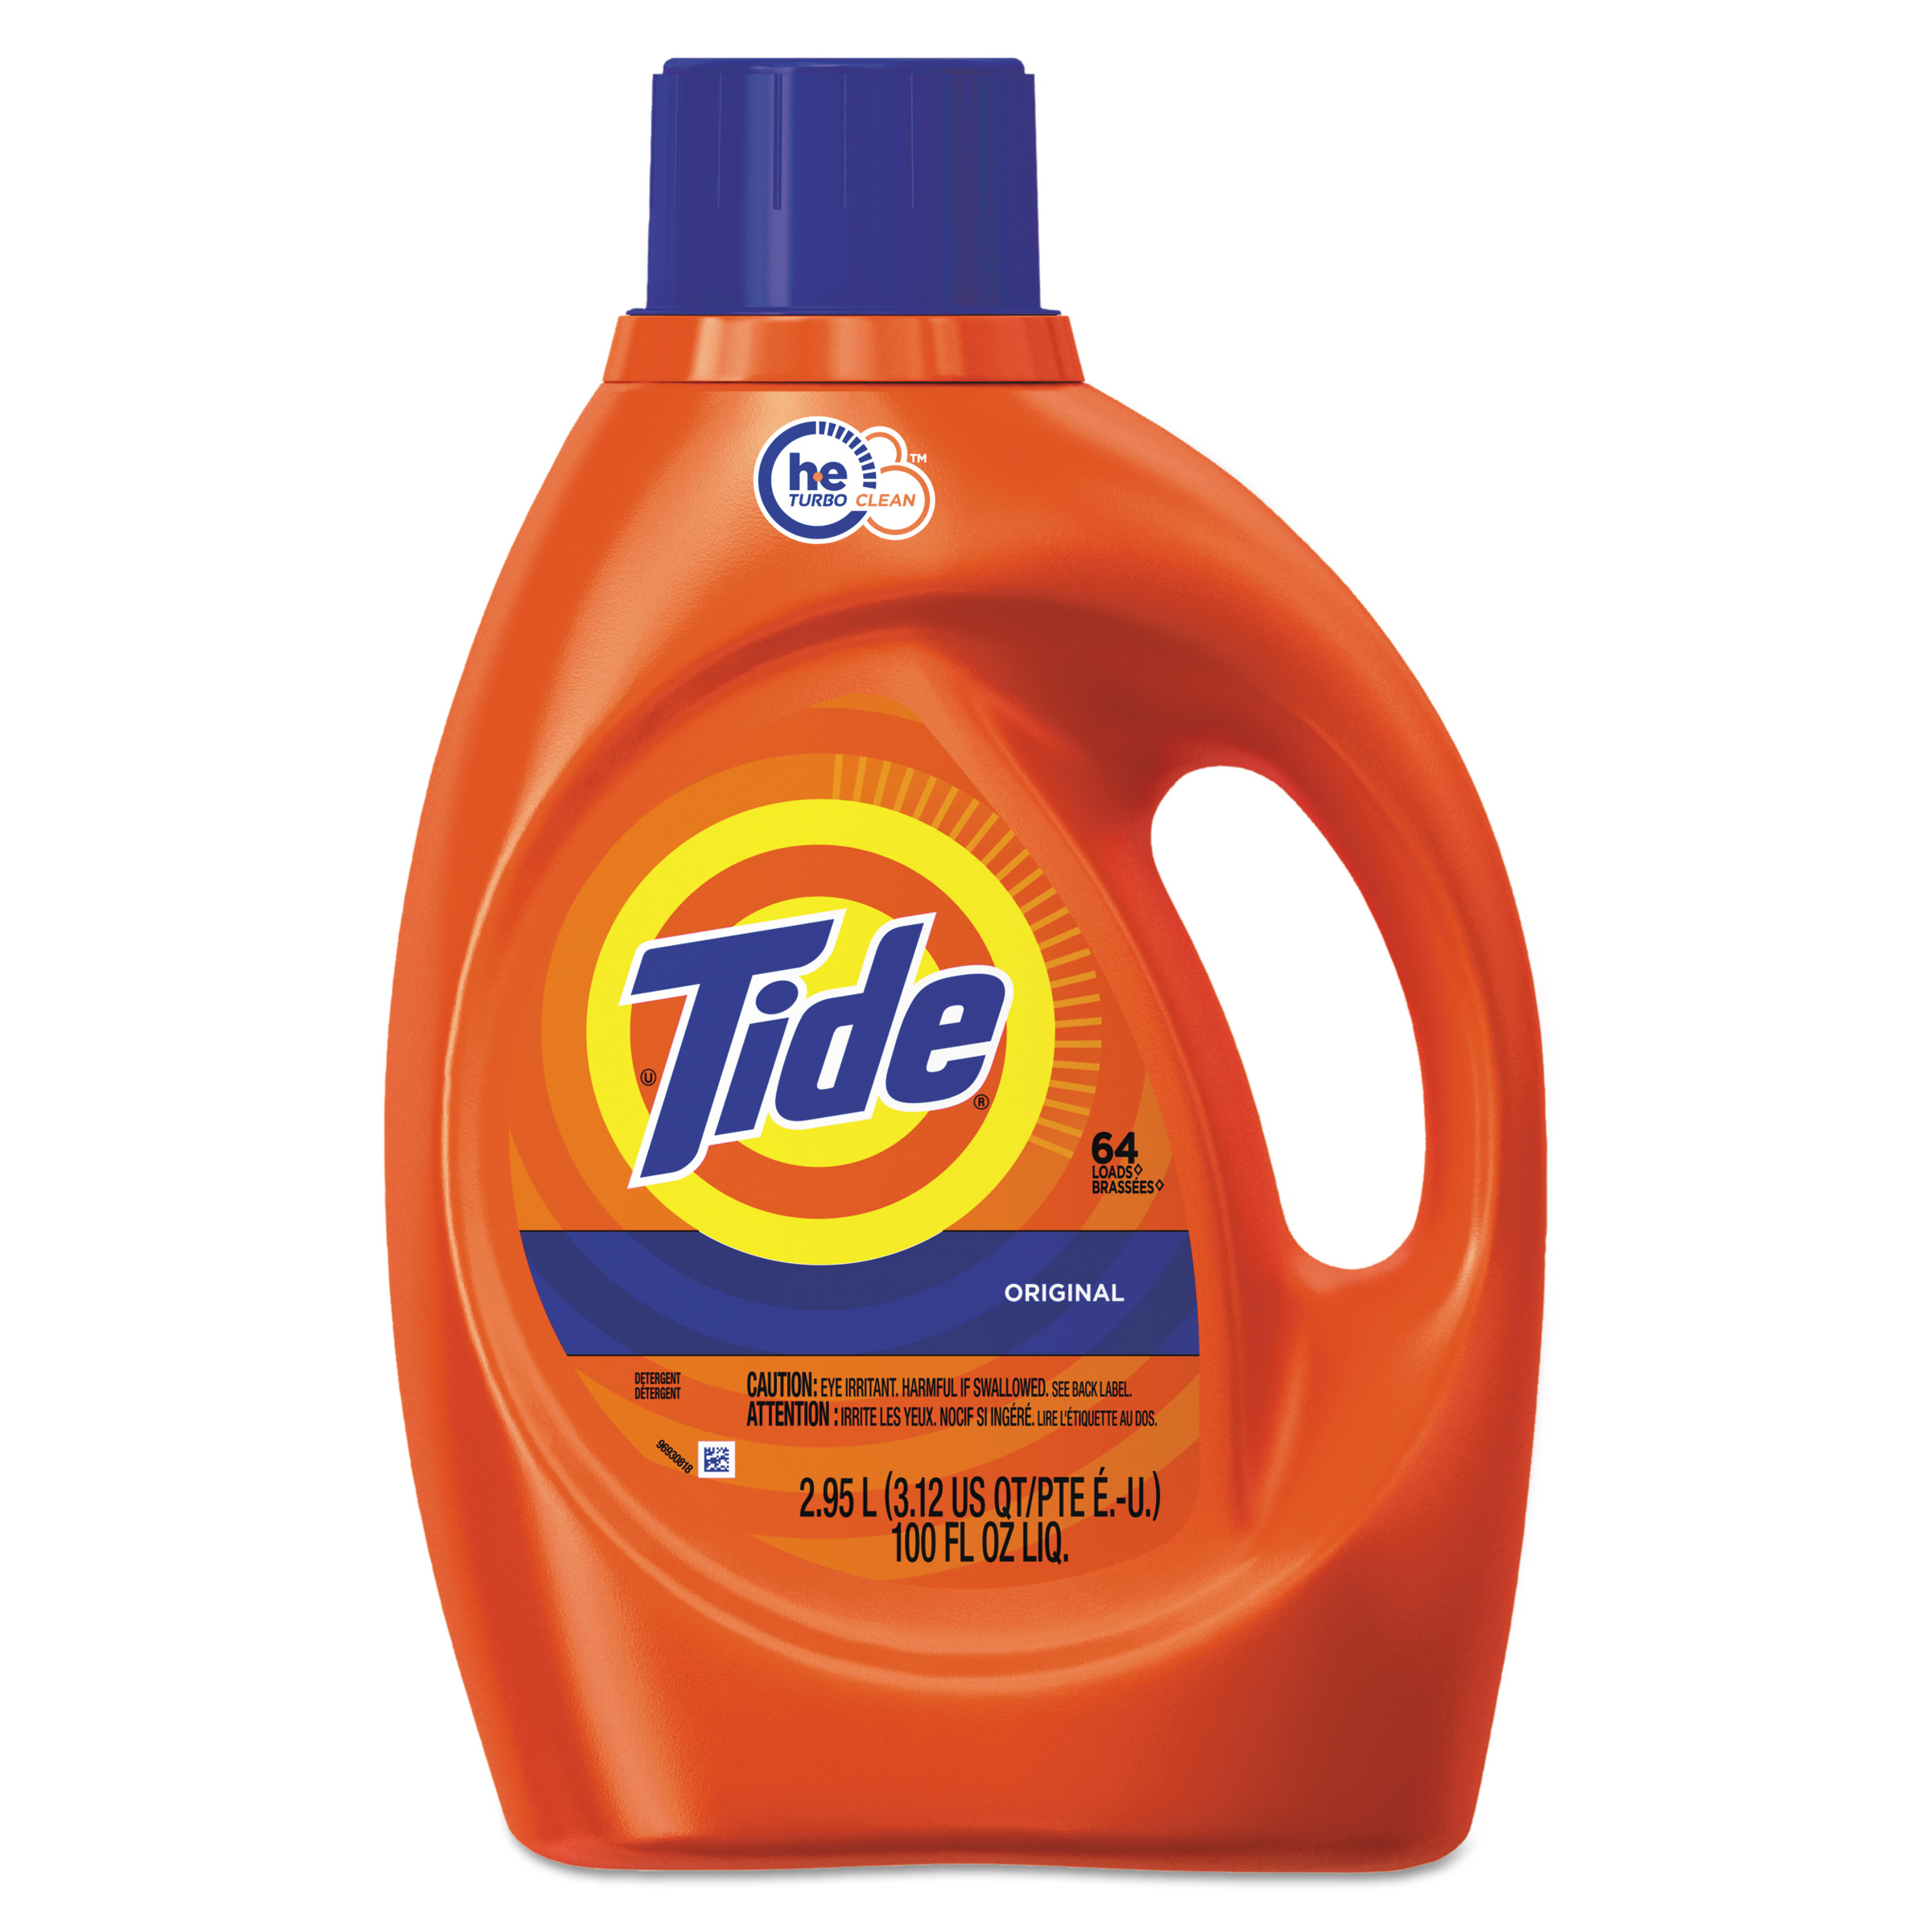 Tide Original Scent HE Turbo Clean Liquid Laundry Detergent, 100 oz, 64 loads